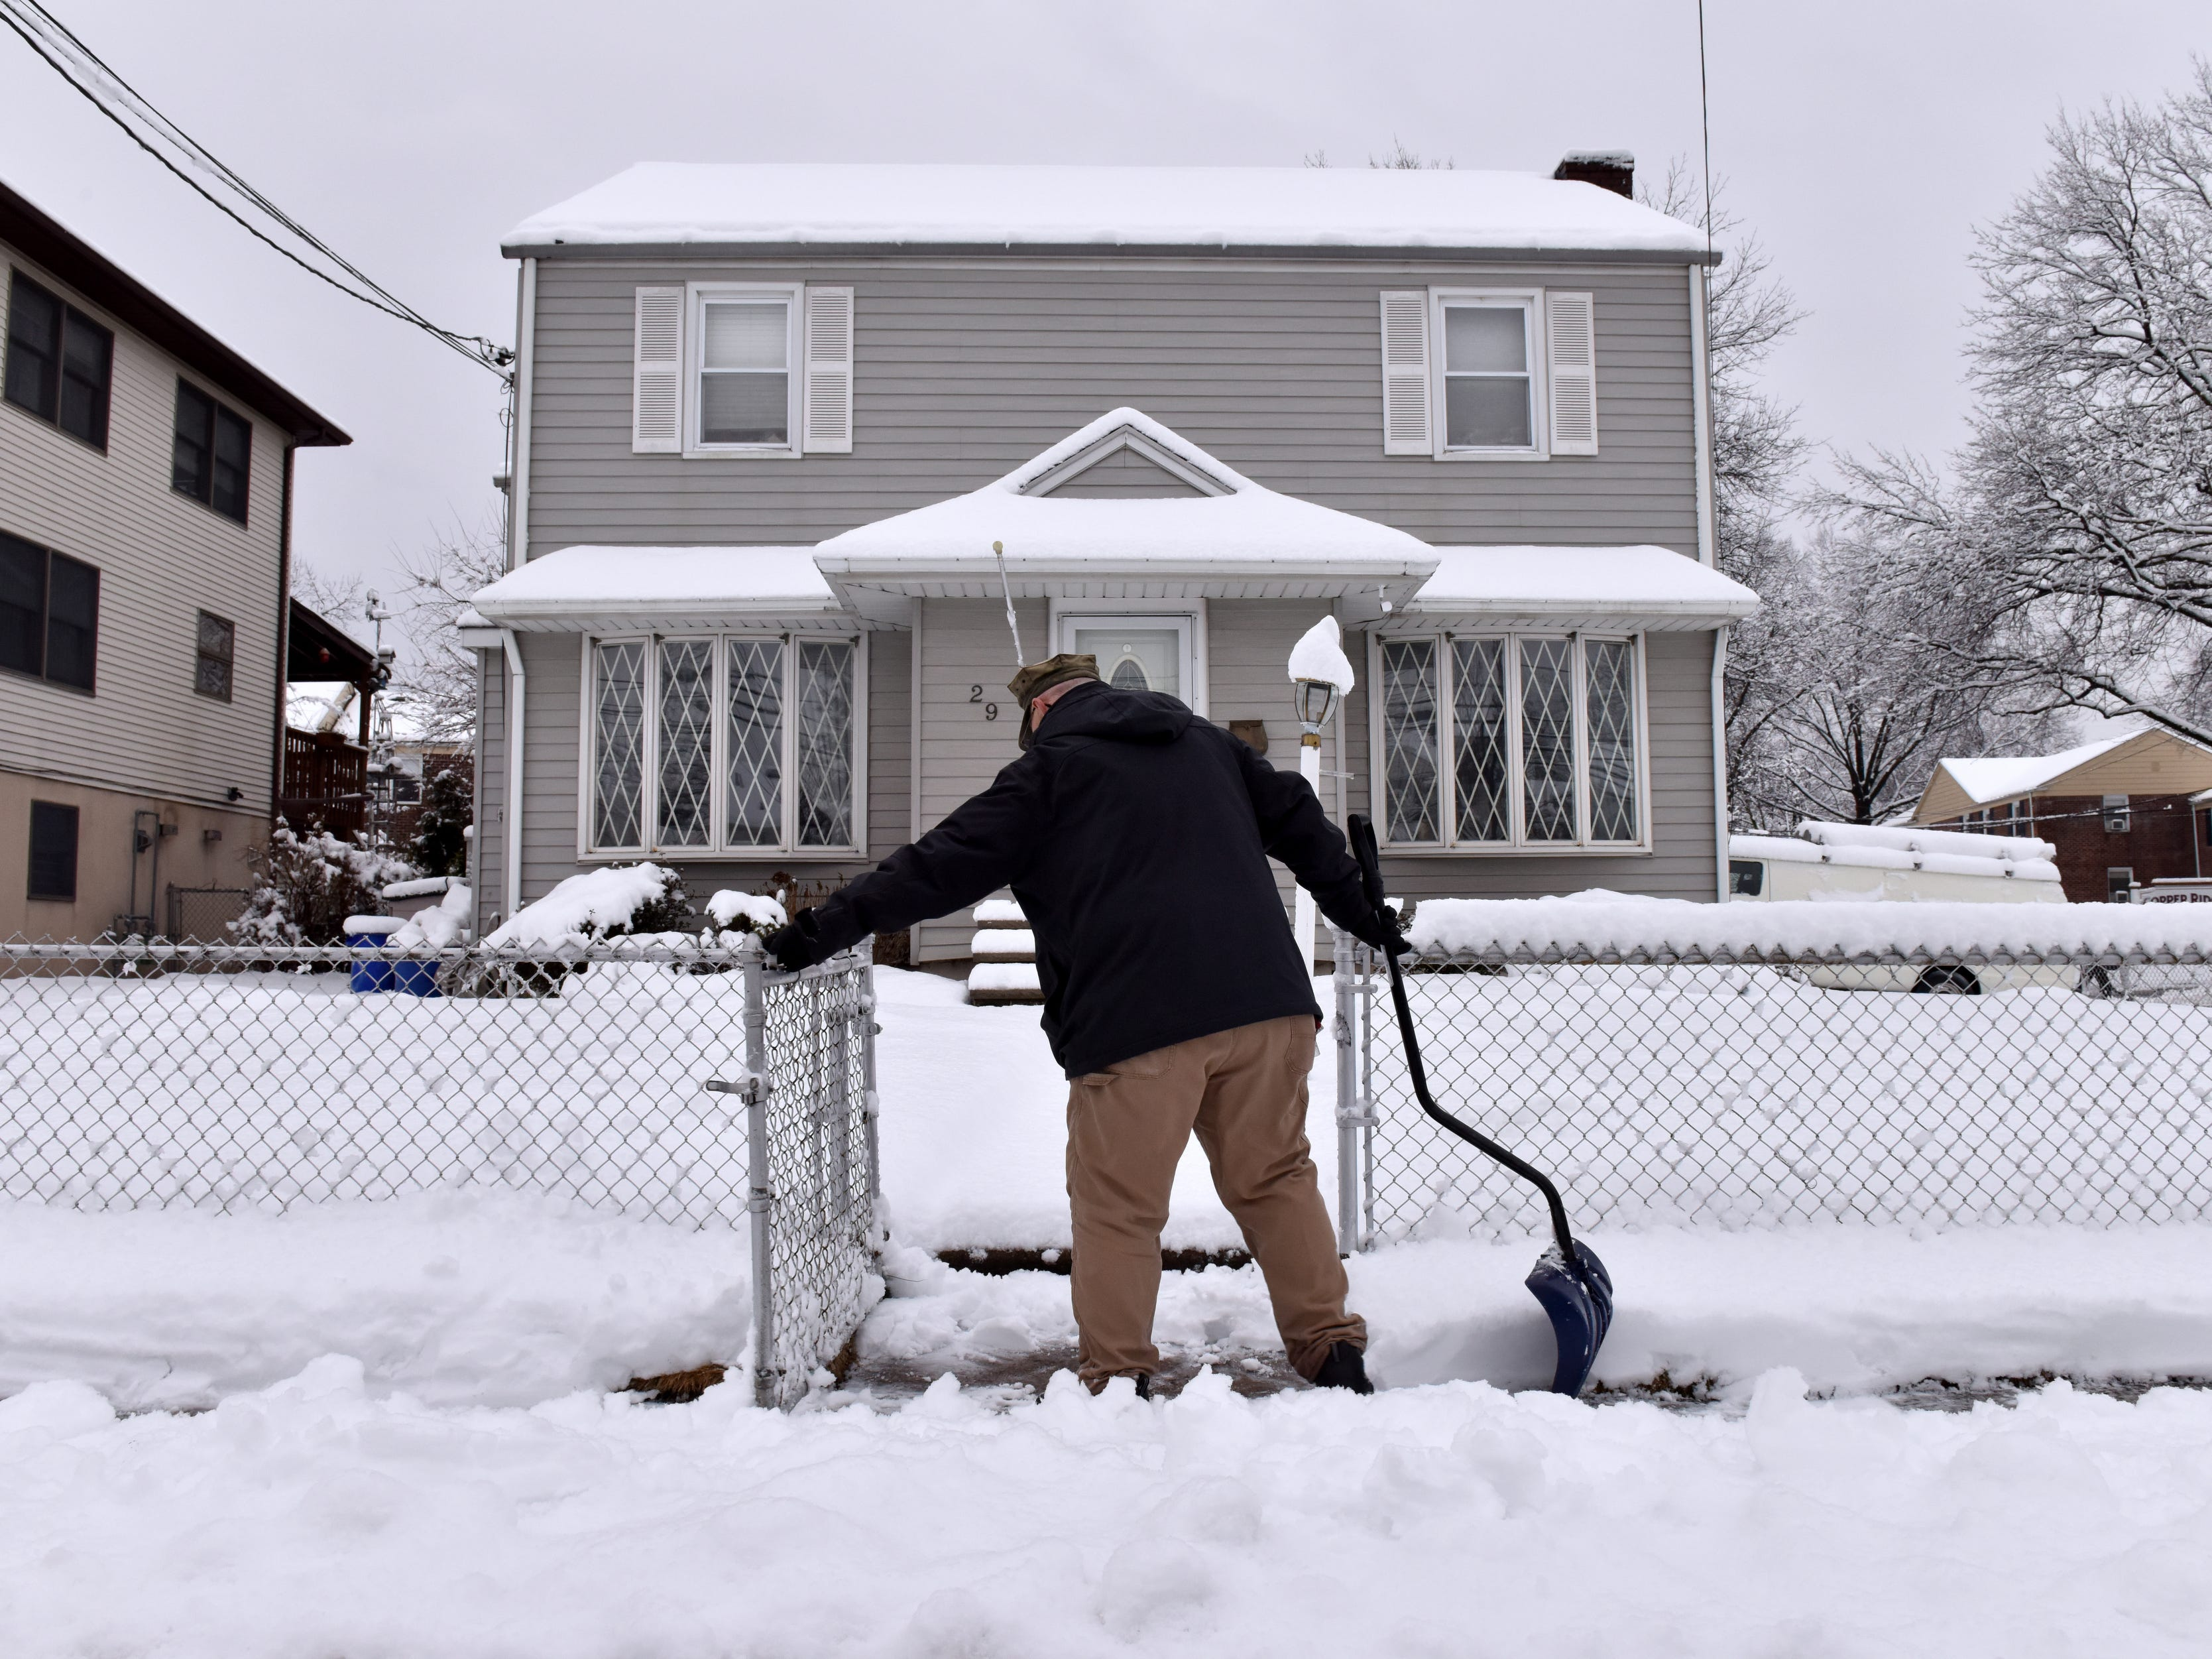 Bob Wilson clears the sidewalk in front of his home in North Arlington on Monday morning March 4, 2019.